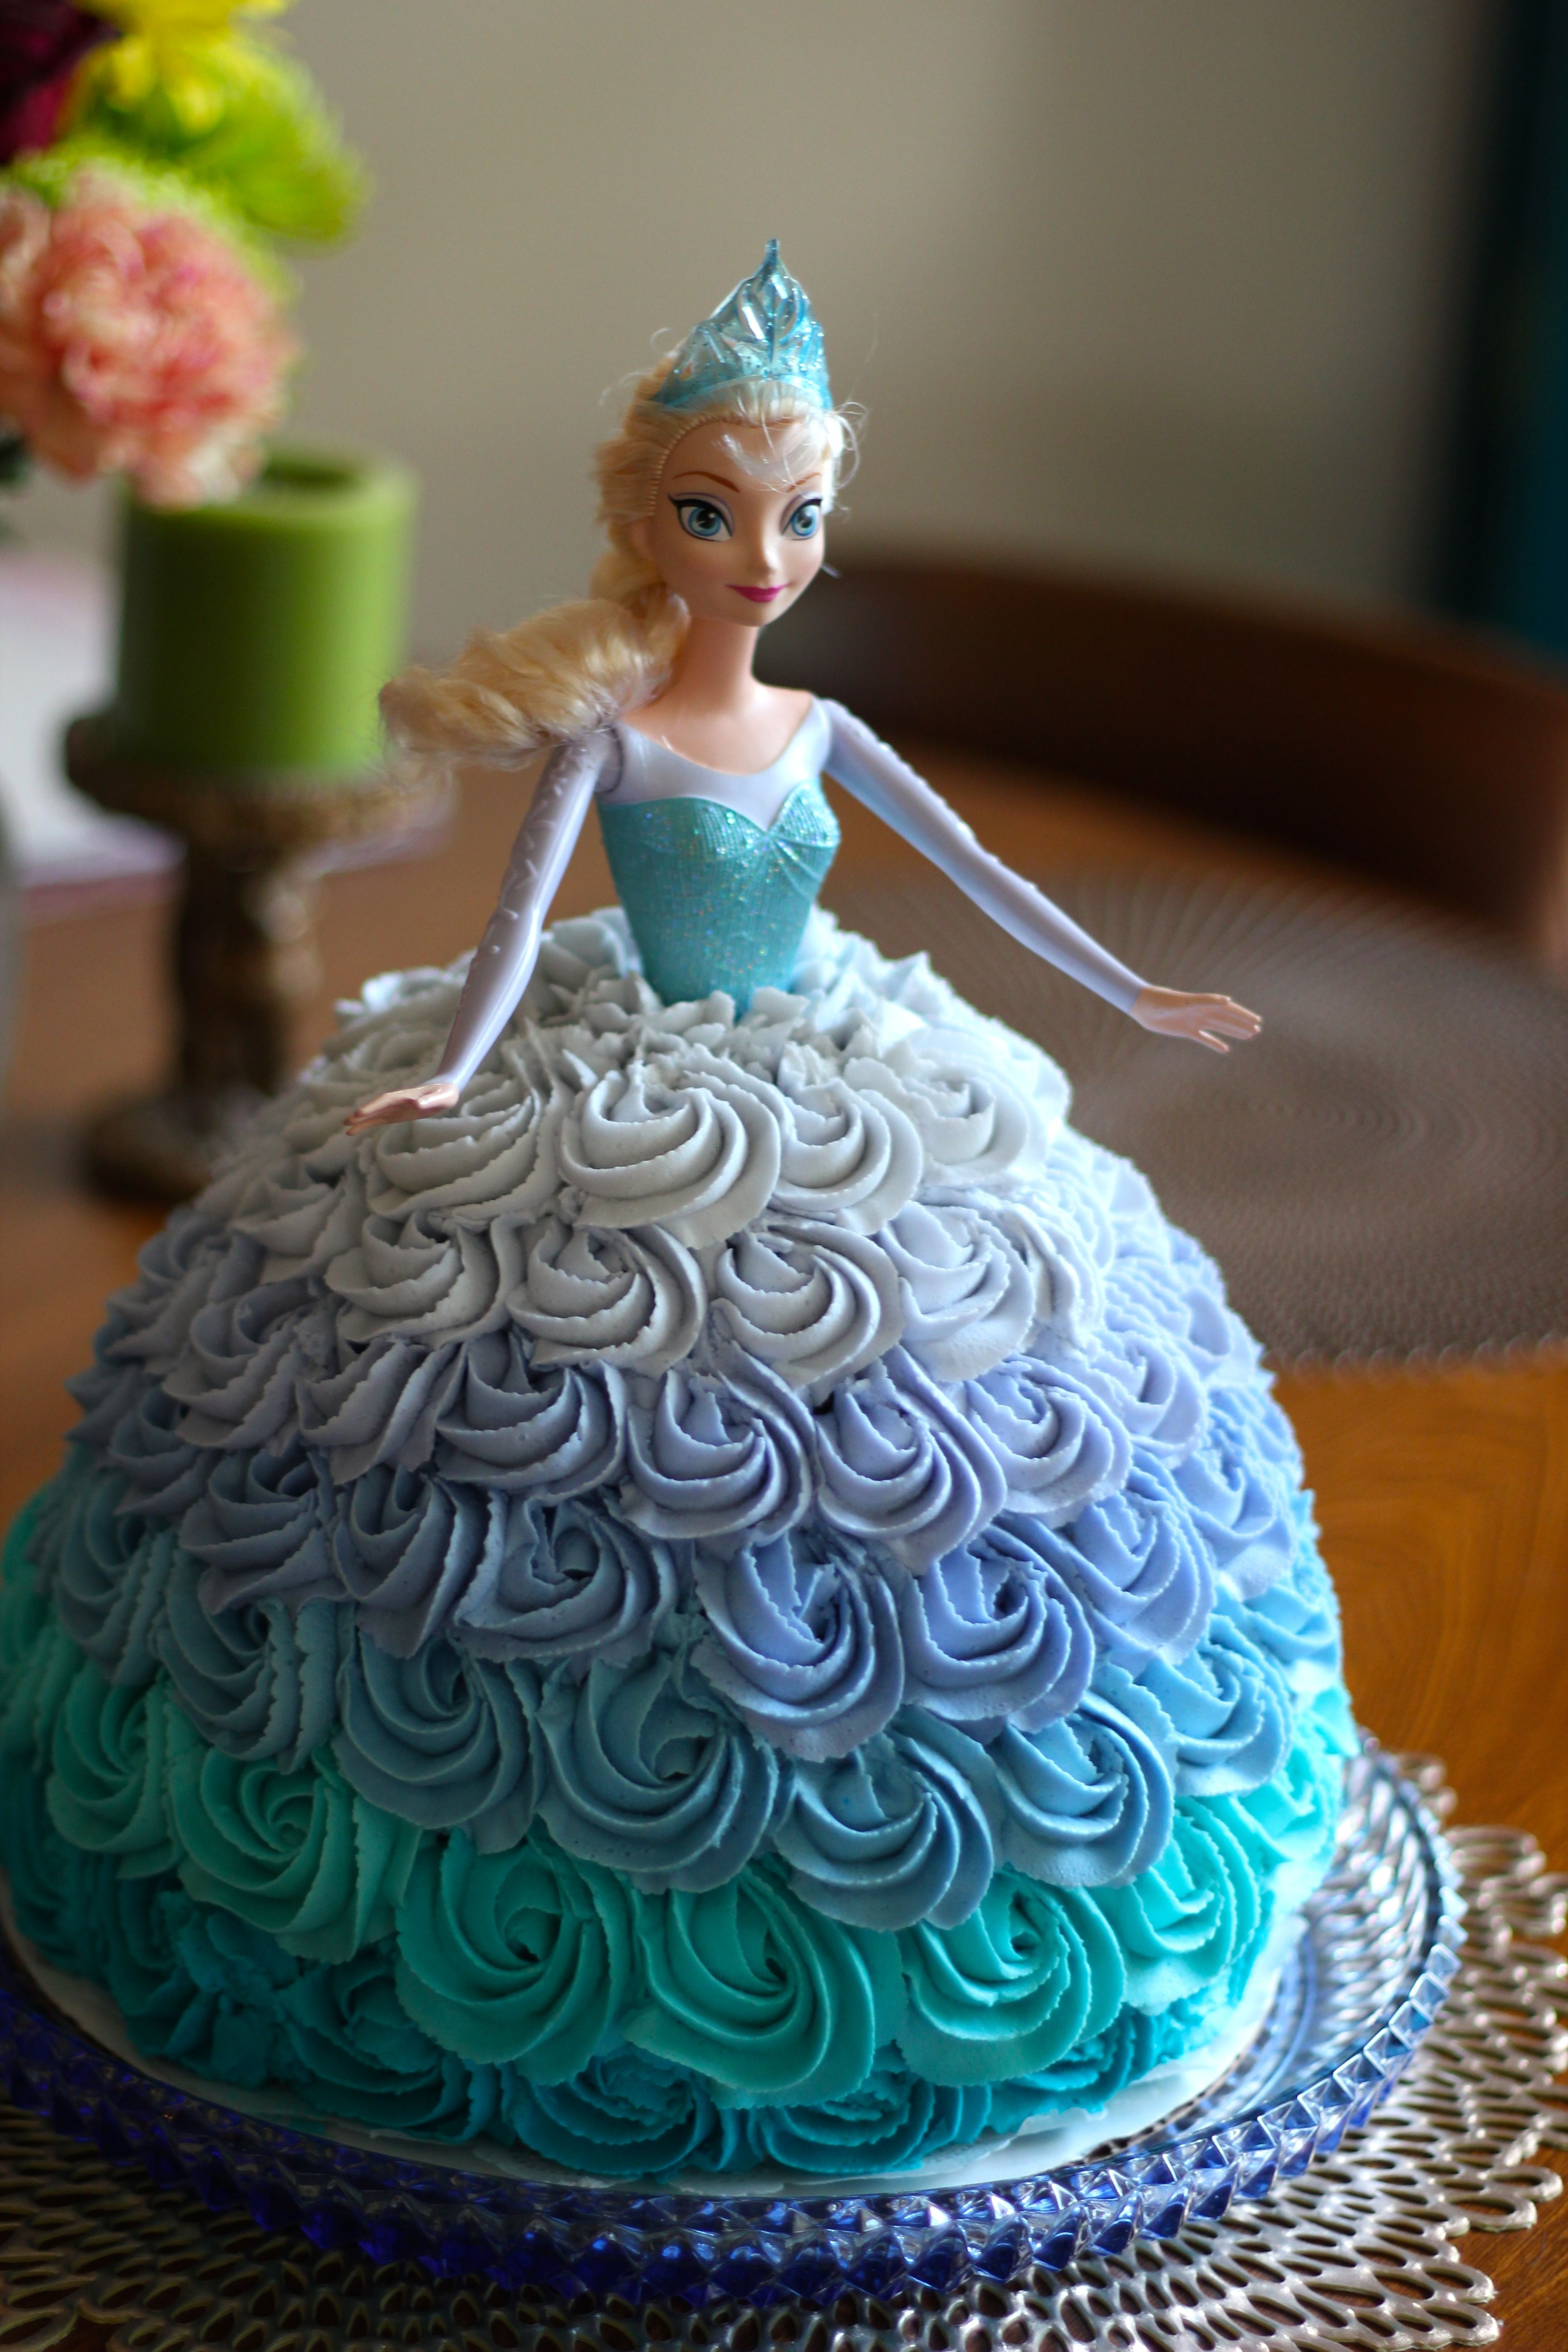 Ive Done Several Doll Cakes Take A Look At My Facebook Page For